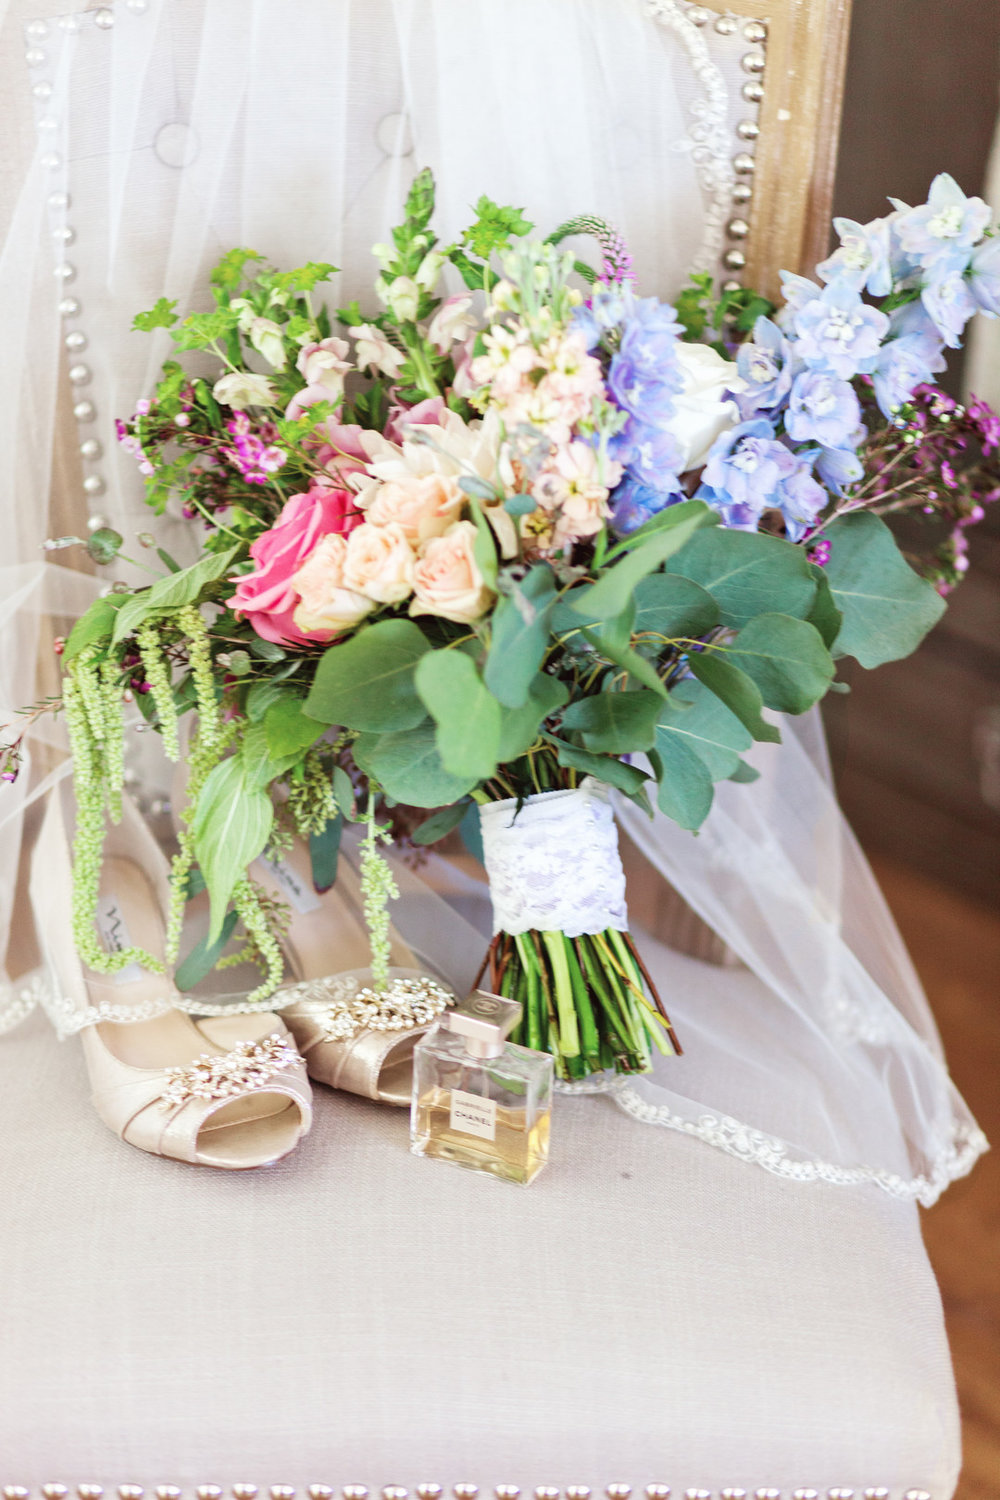 www.santabarbarawedding.com | Kay Mitchell | The Carriage House Effortless Events | Bridal Bouquet | Bride's Shoes